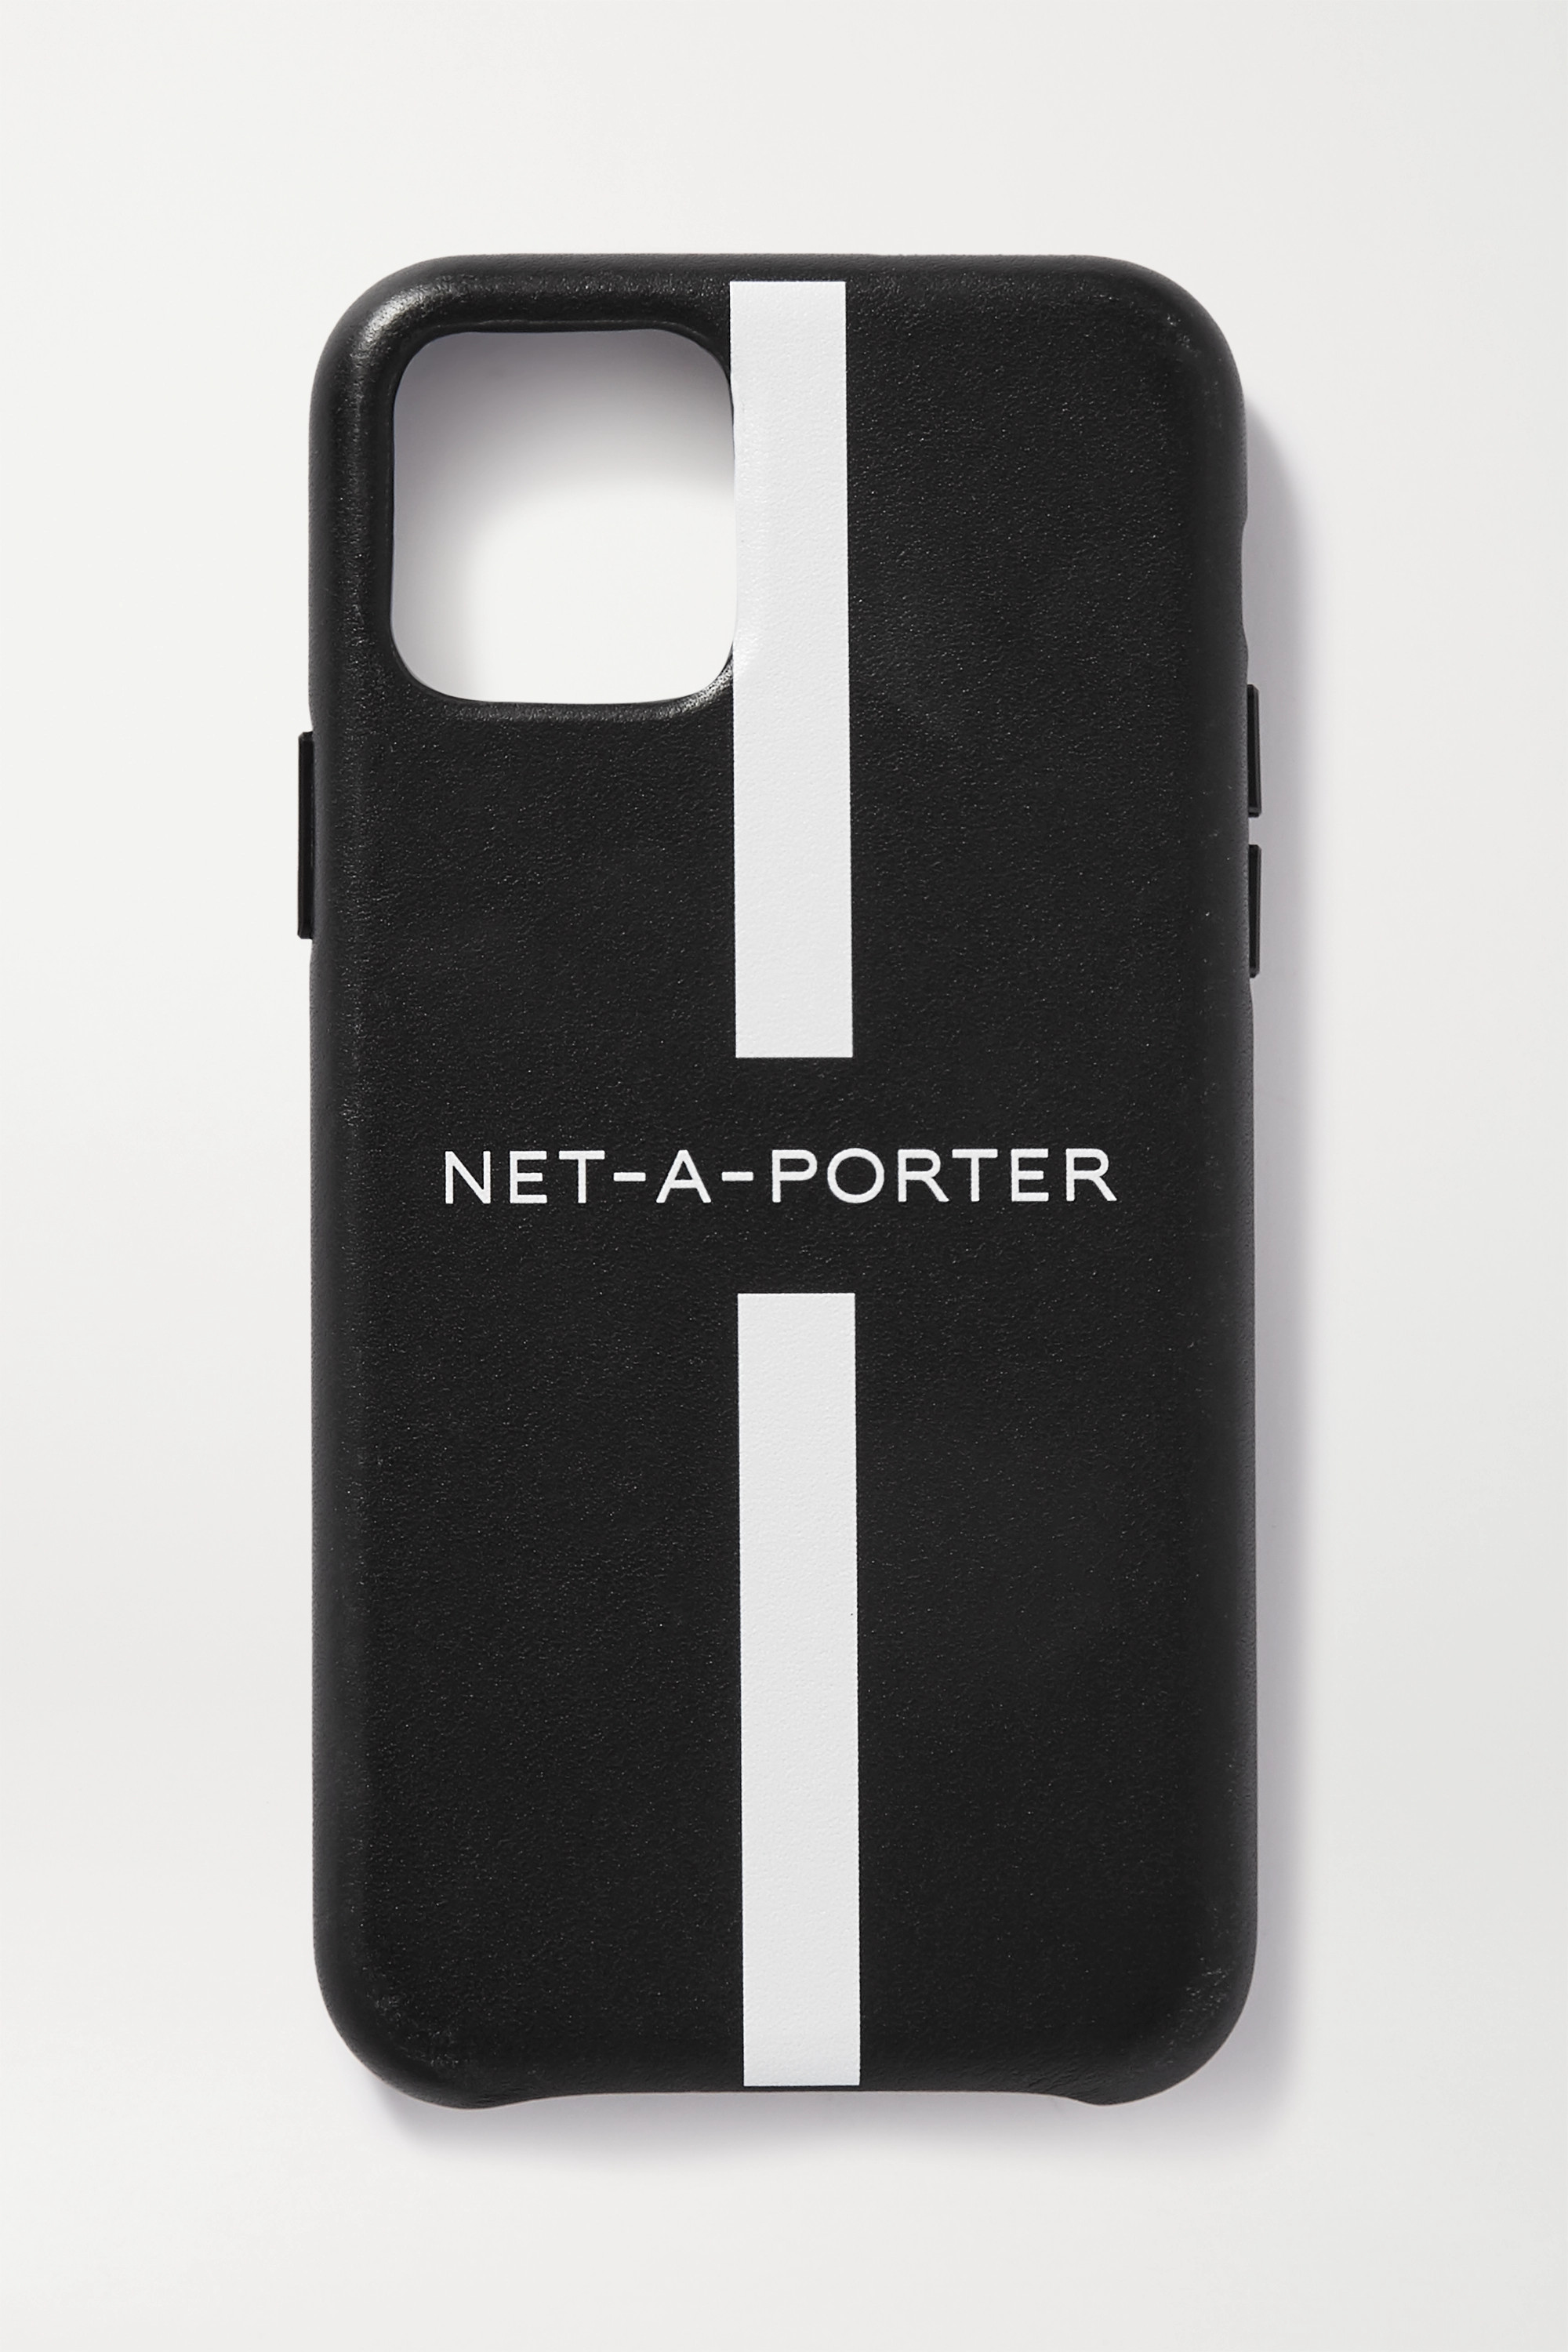 NET-A-PORTER + The Daily Edited printed leather iPhone 11 case